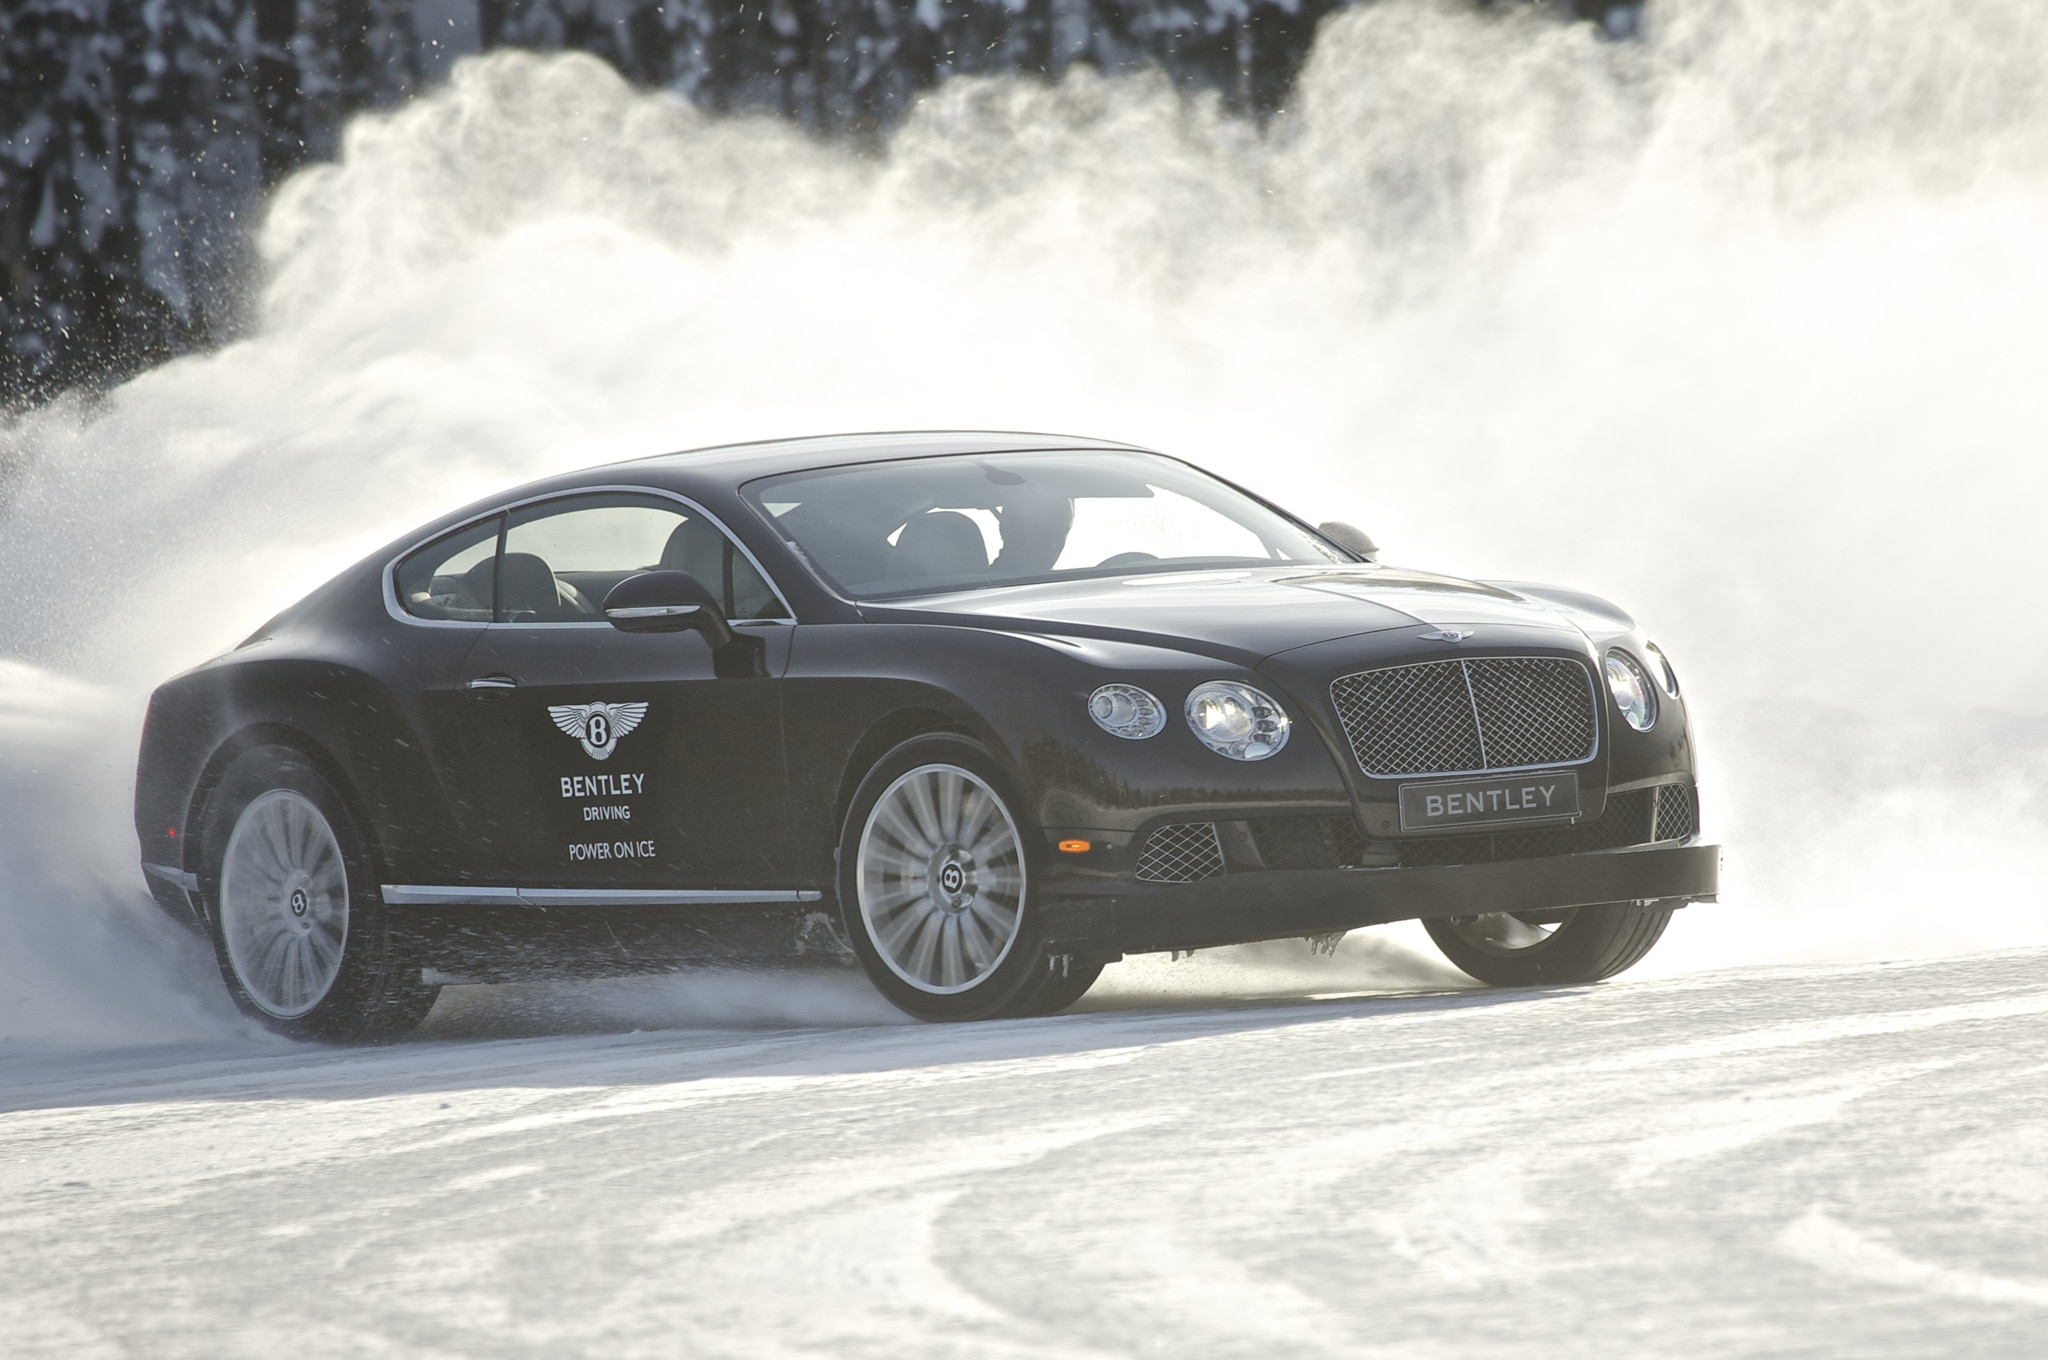 Bentley Power On Ice1